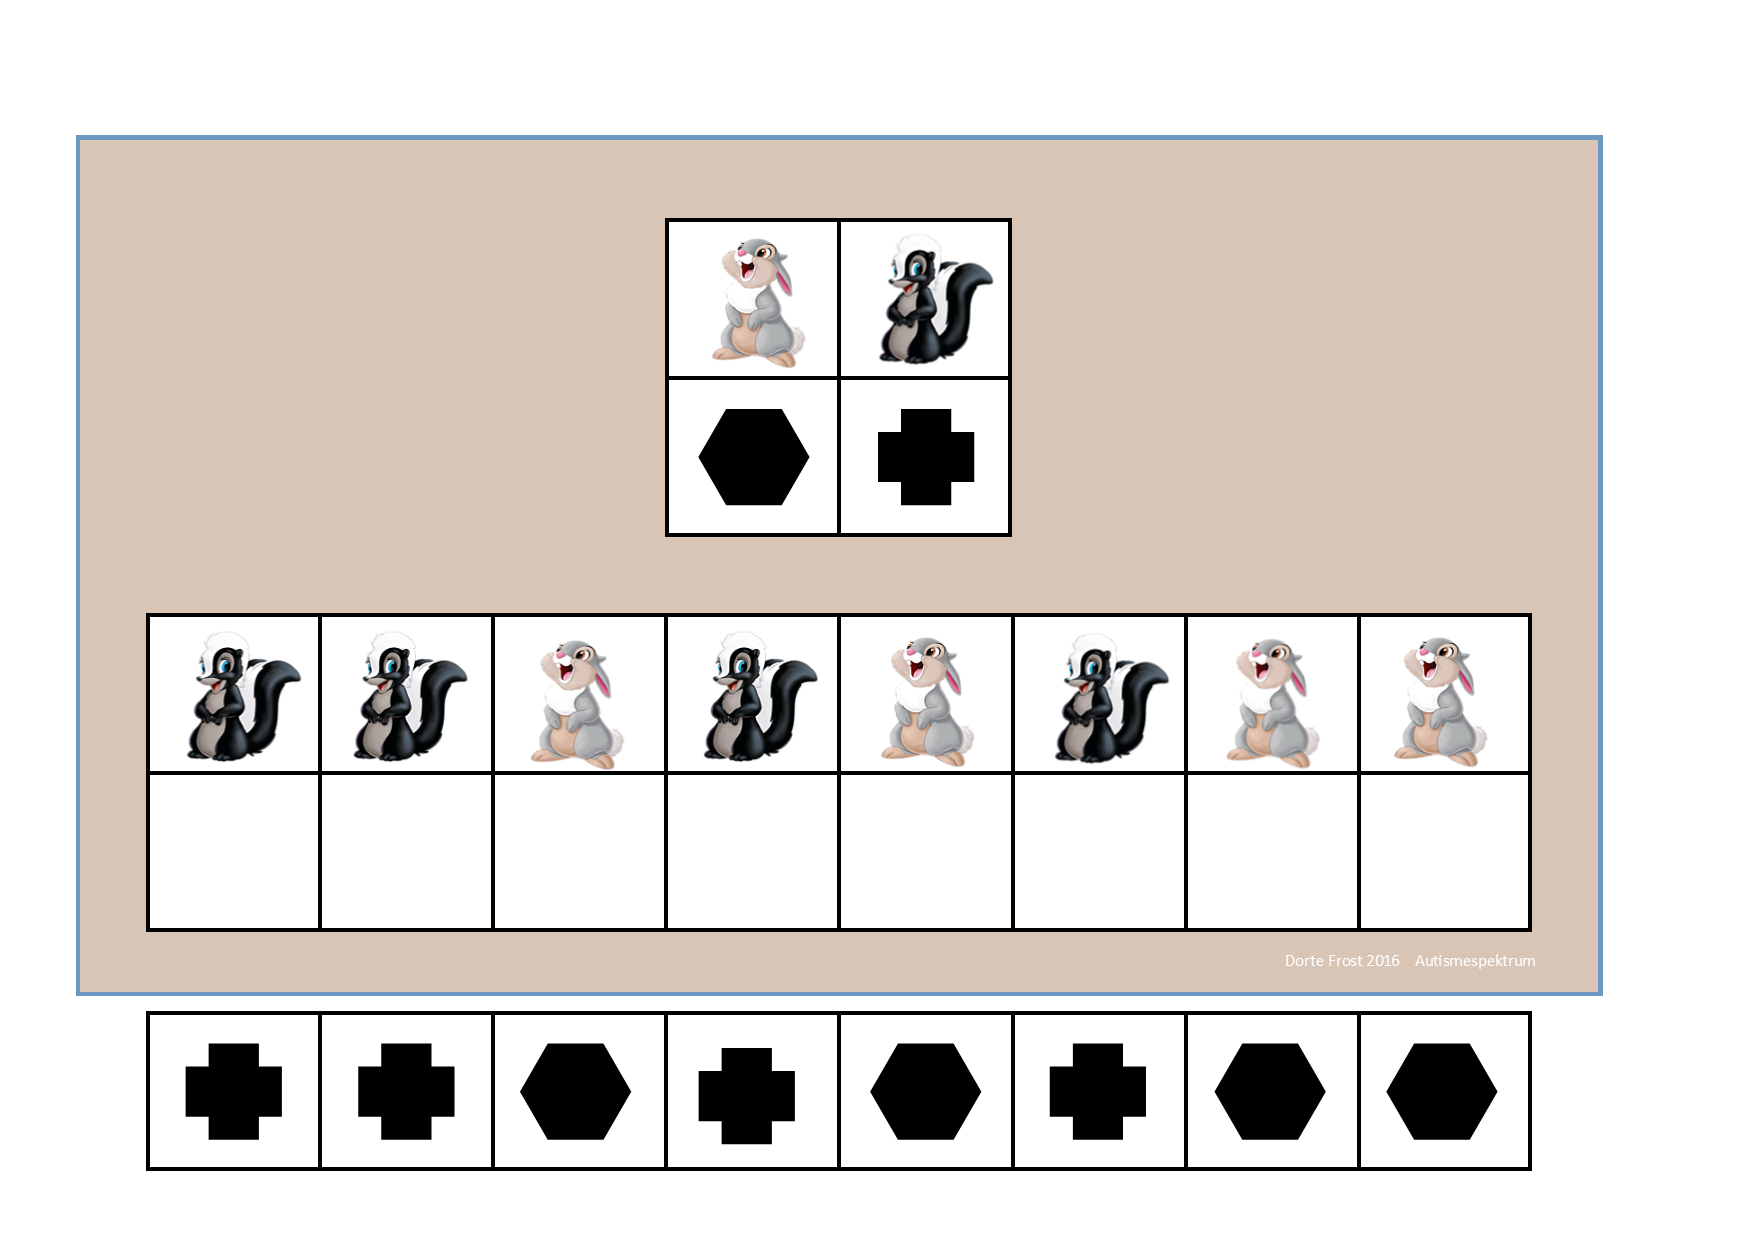 Board And Tiles For The Disney Visual Perception Game 2